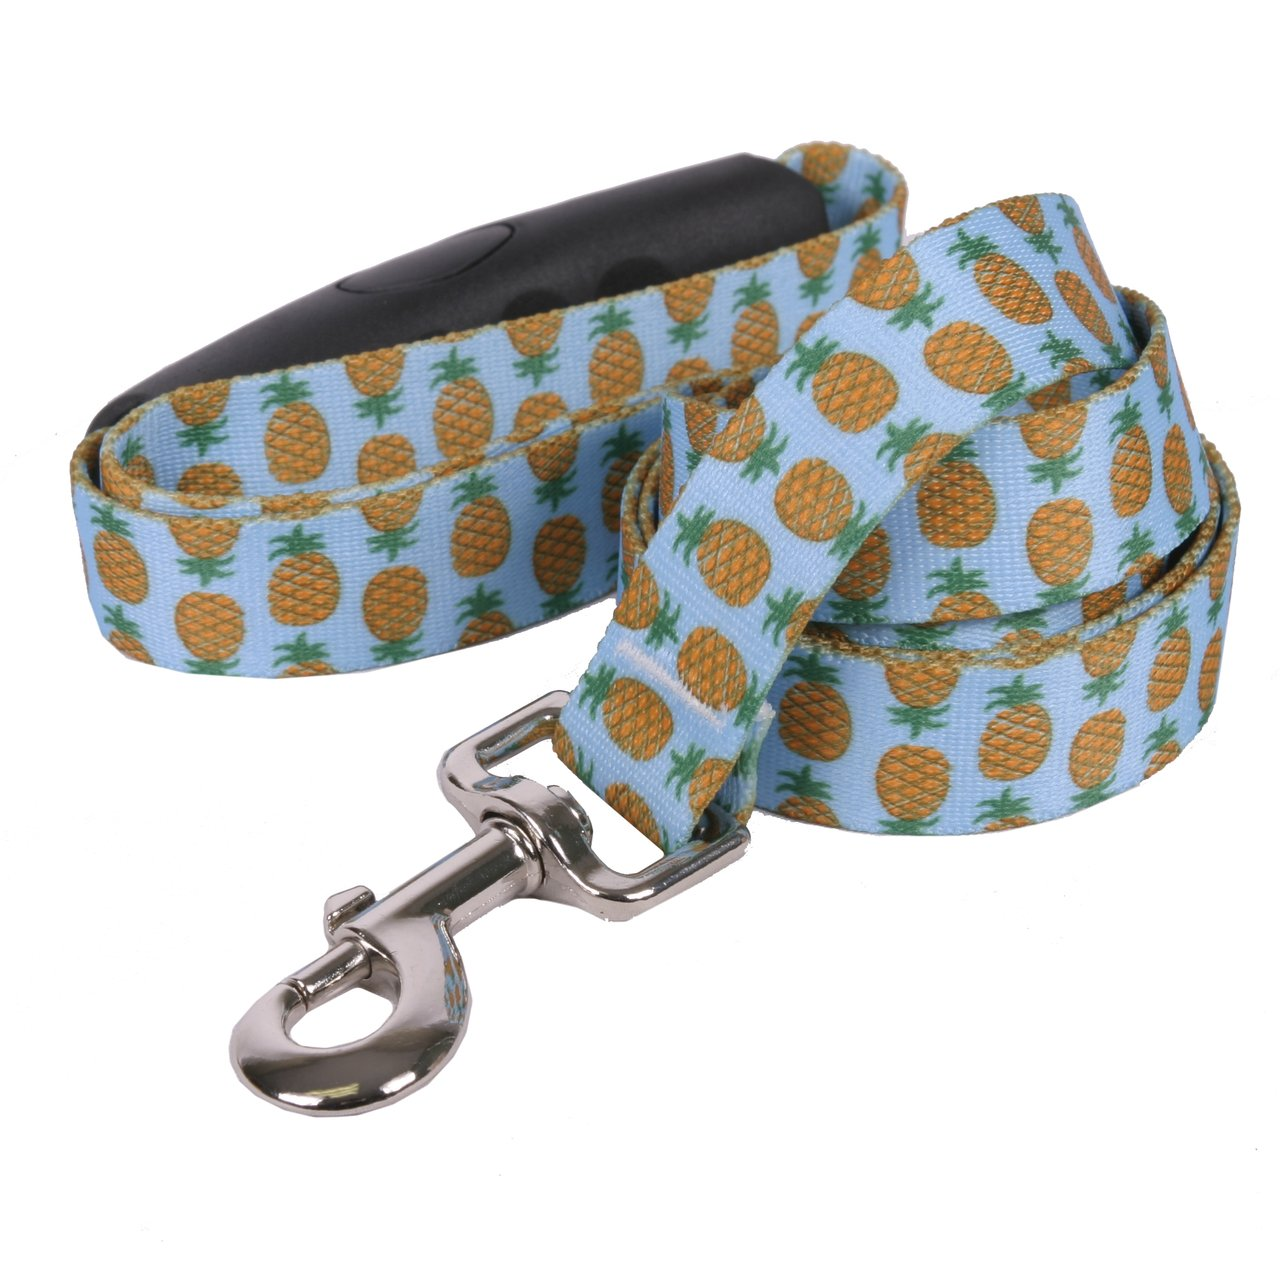 Yellow Dog Design Pineapples Blue EZ-Grip Dog Leash with Comfort Handle, Large-1'' Wide and 5' (60'') Long